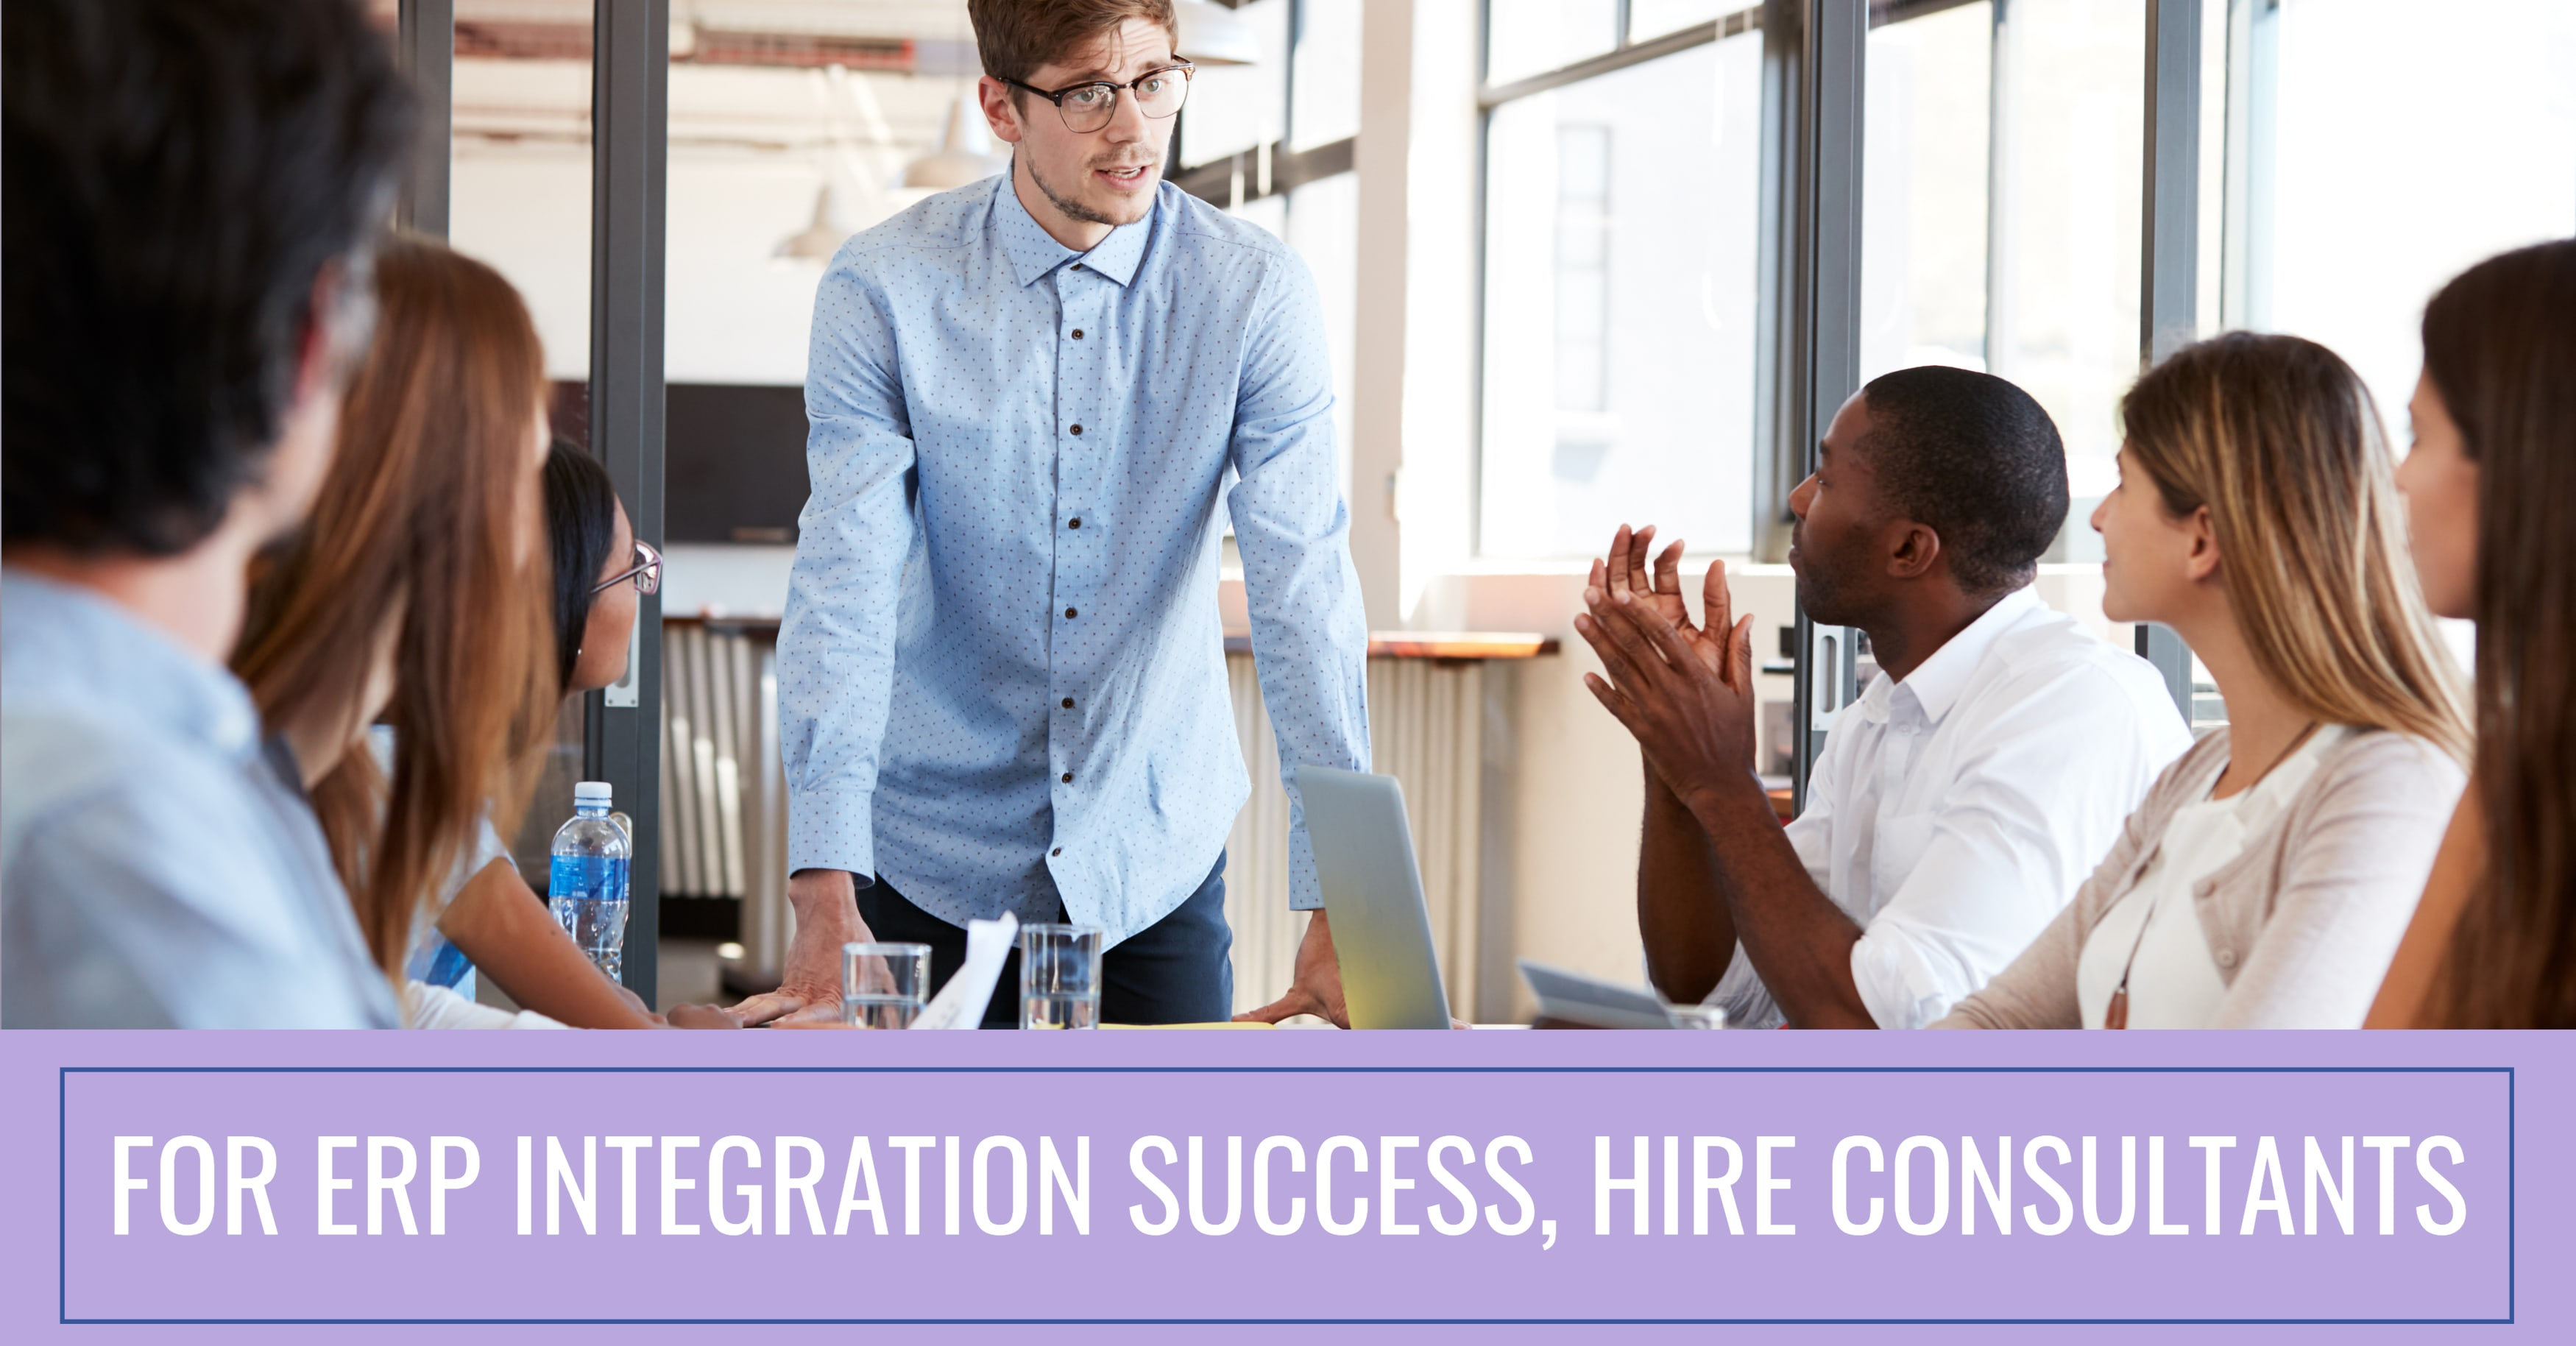 For ERP Integration Success, Hire Consultants